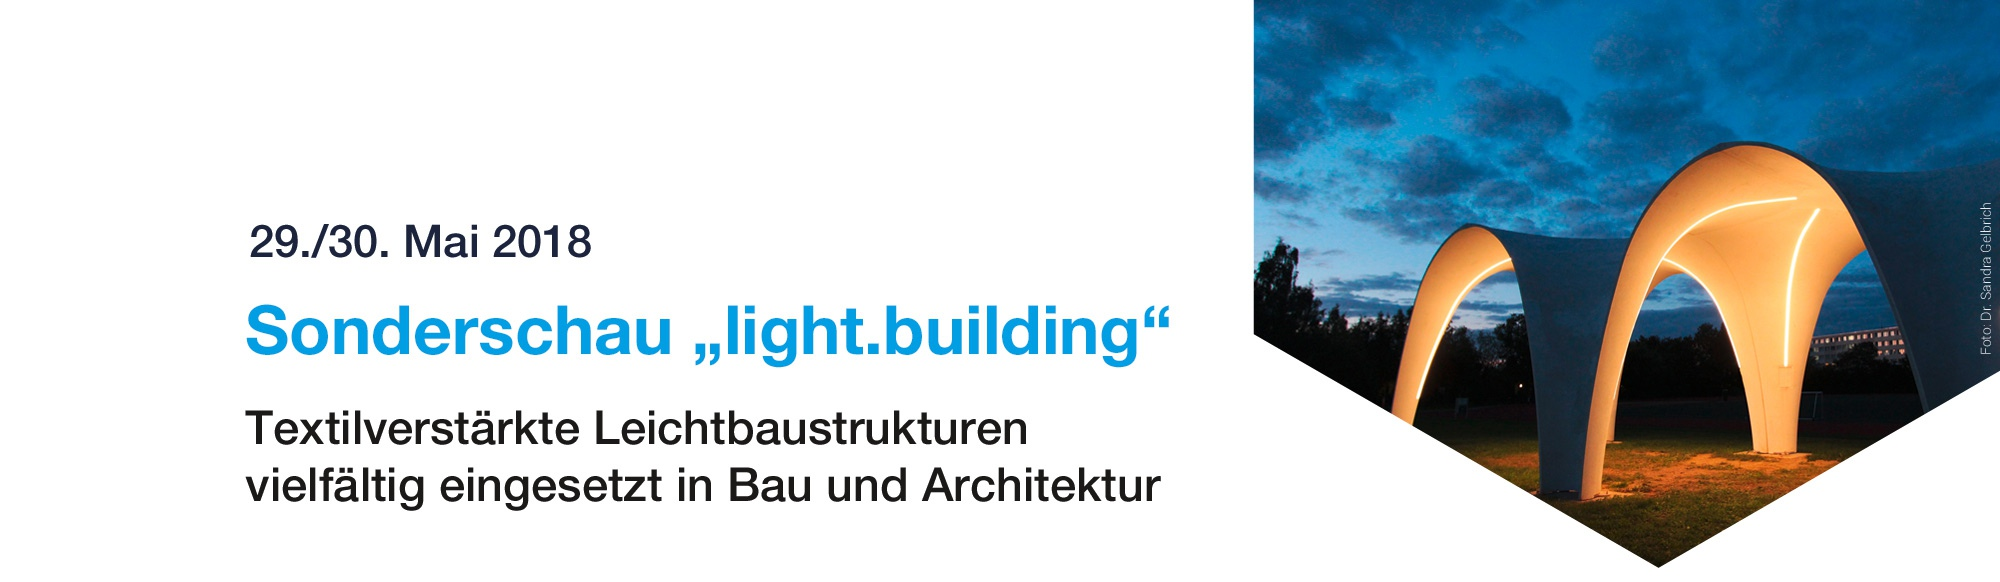 Sonderschau light.building